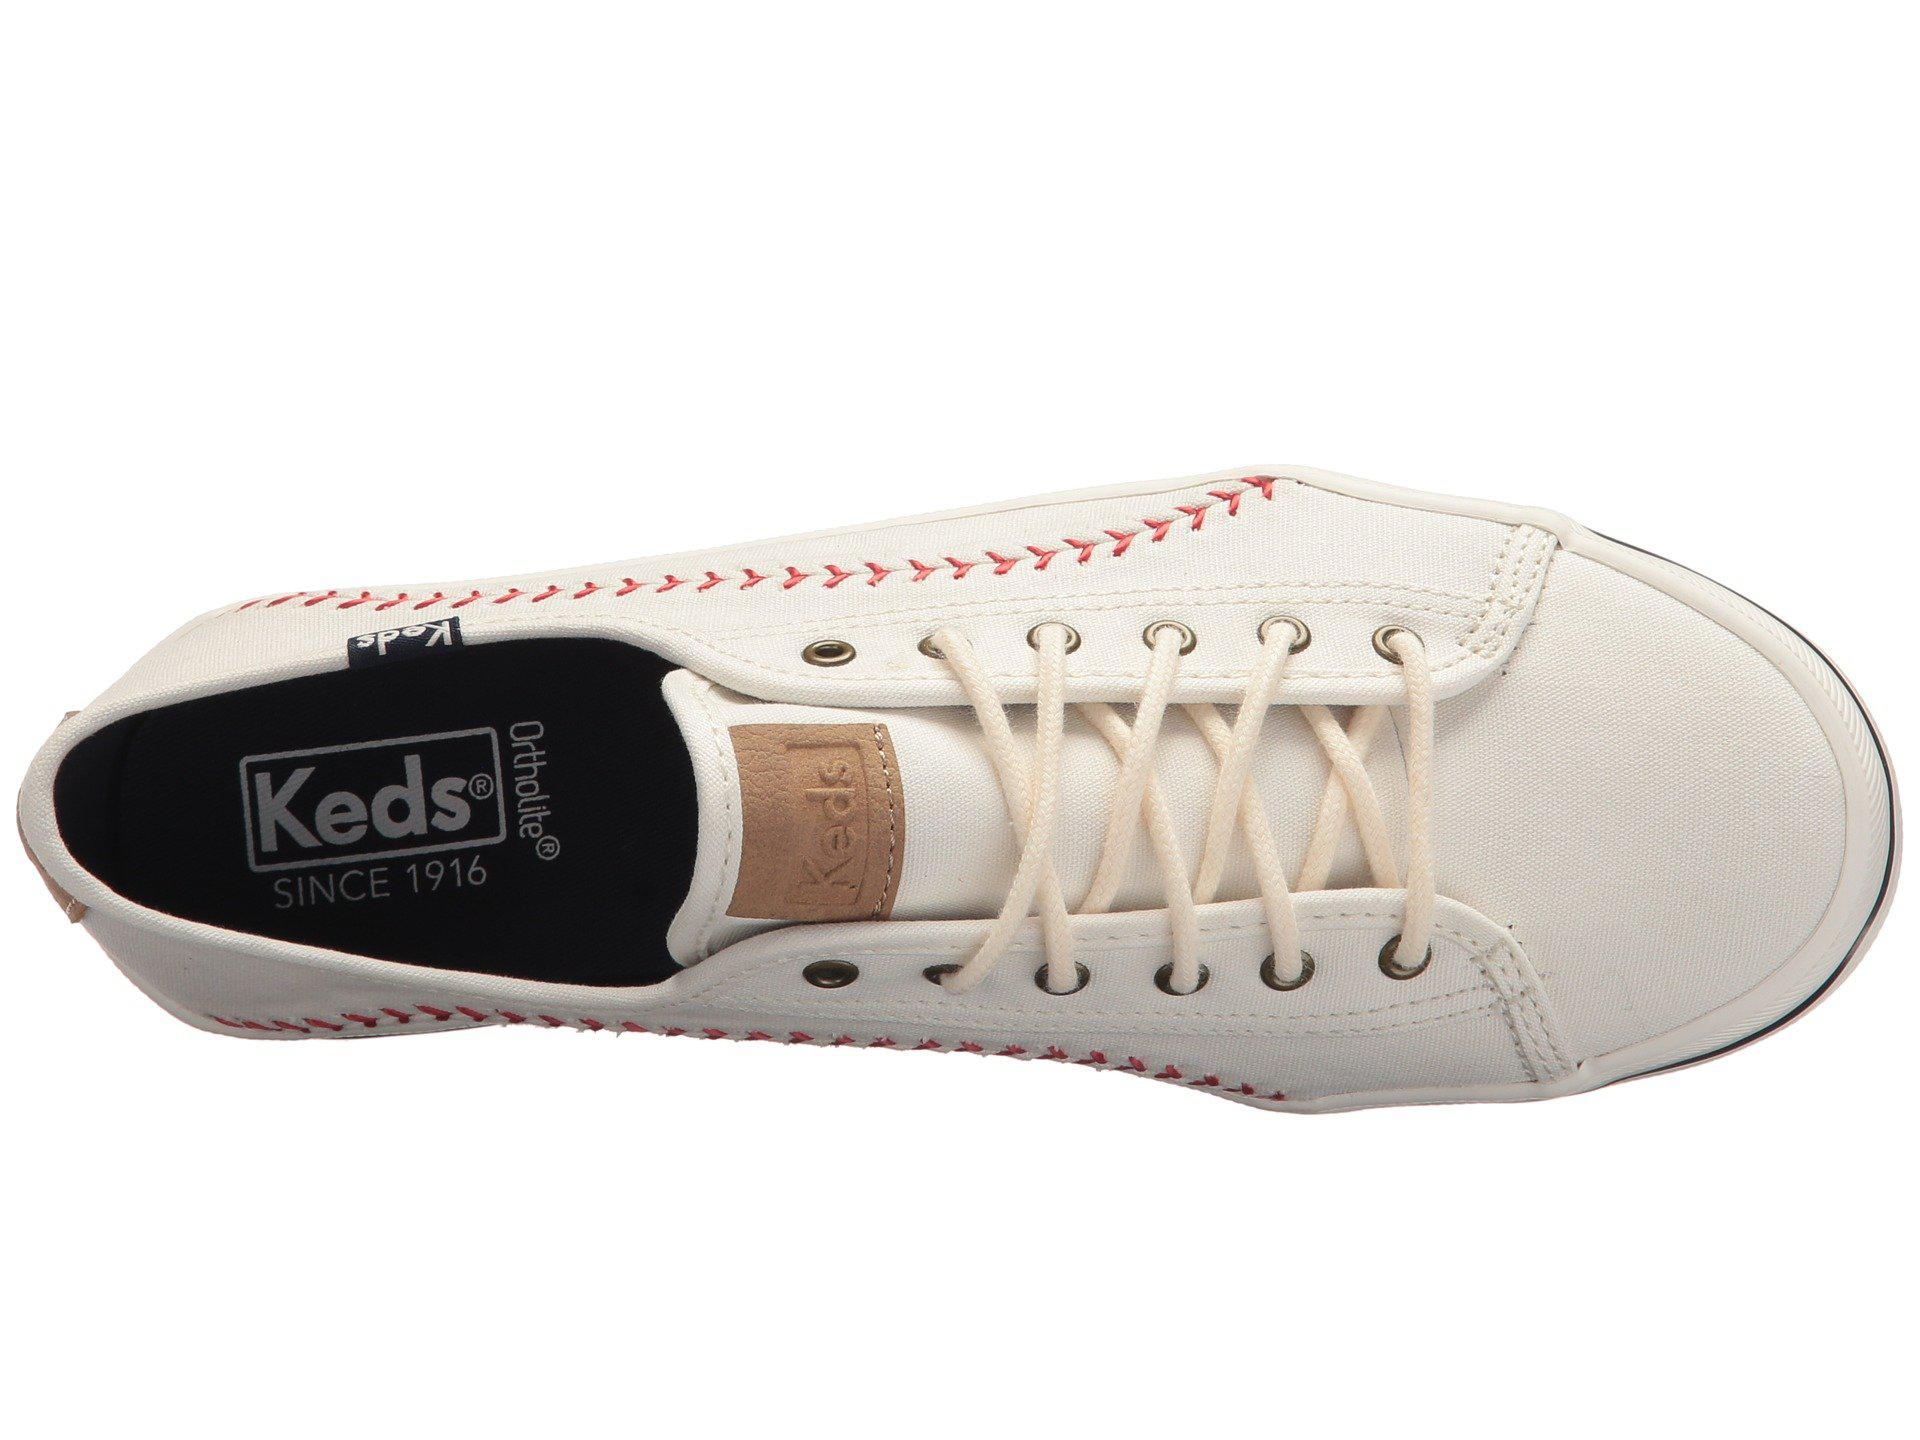 25ef8811e82 Keds - Multicolor Kickstart Pennant (cream) Women s Lace Up Casual Shoes -  Lyst. View fullscreen